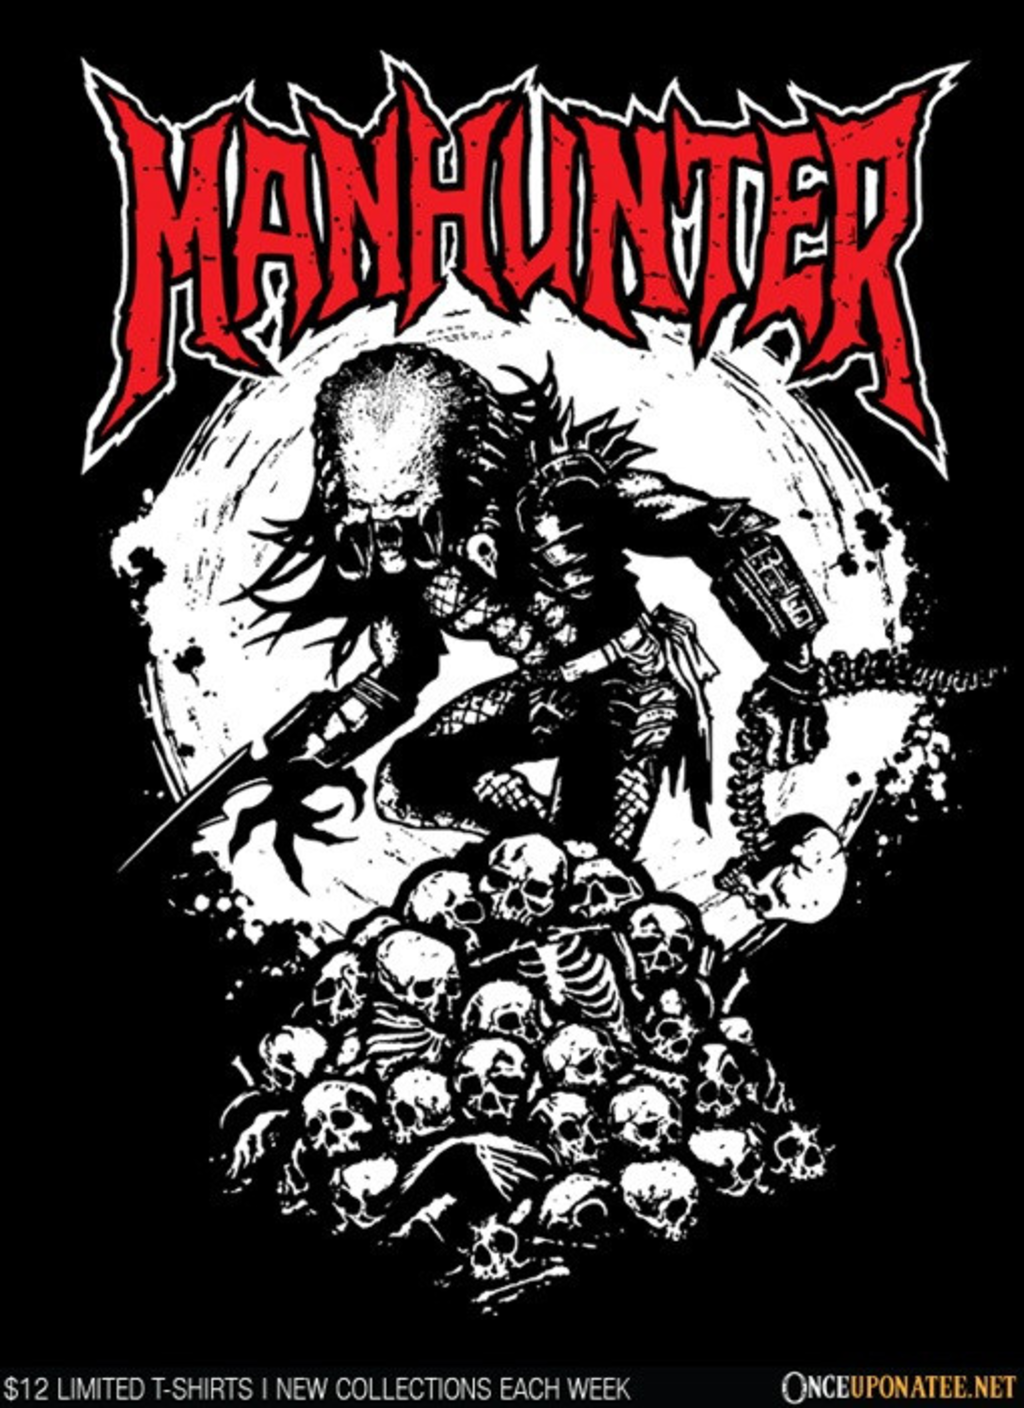 Once Upon a Tee: Manhunter